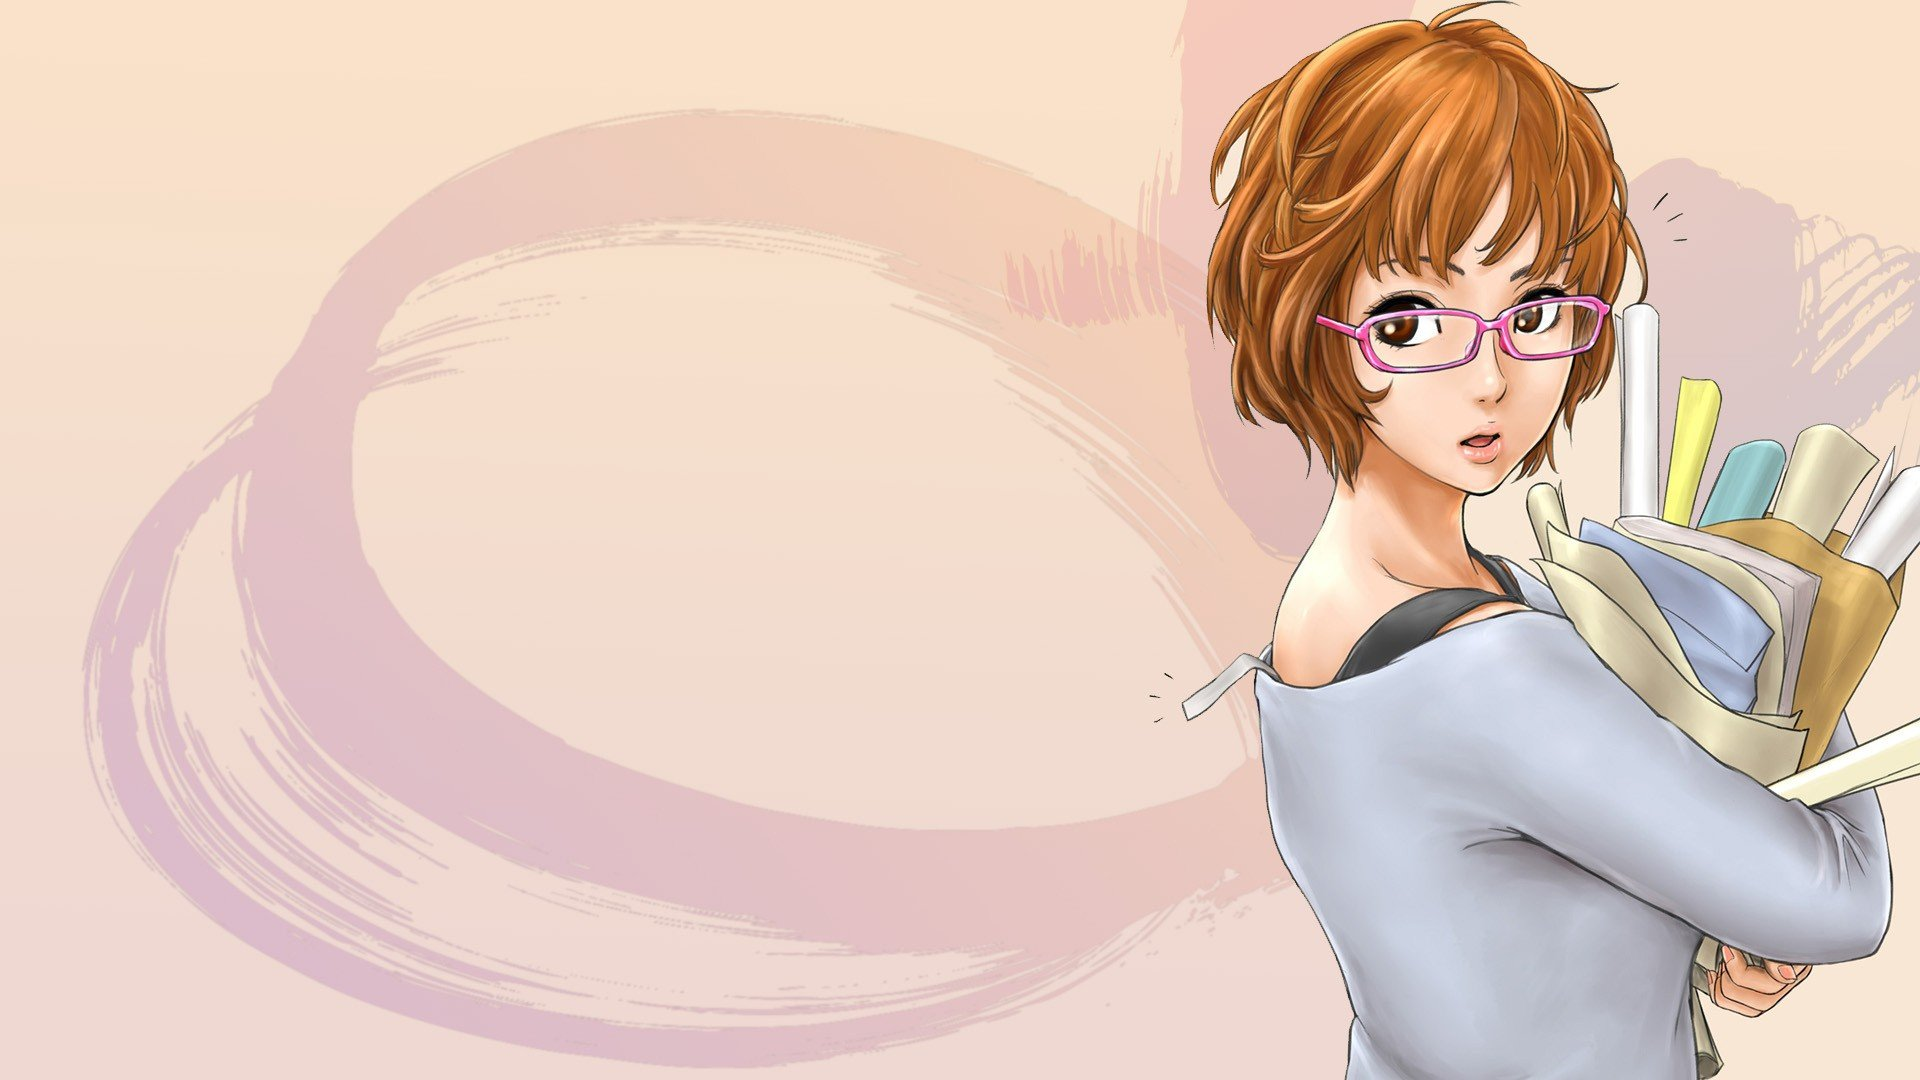 Glasses short hair meganekko anime girls wallpaper 1920x1080 238415 wallpaperup